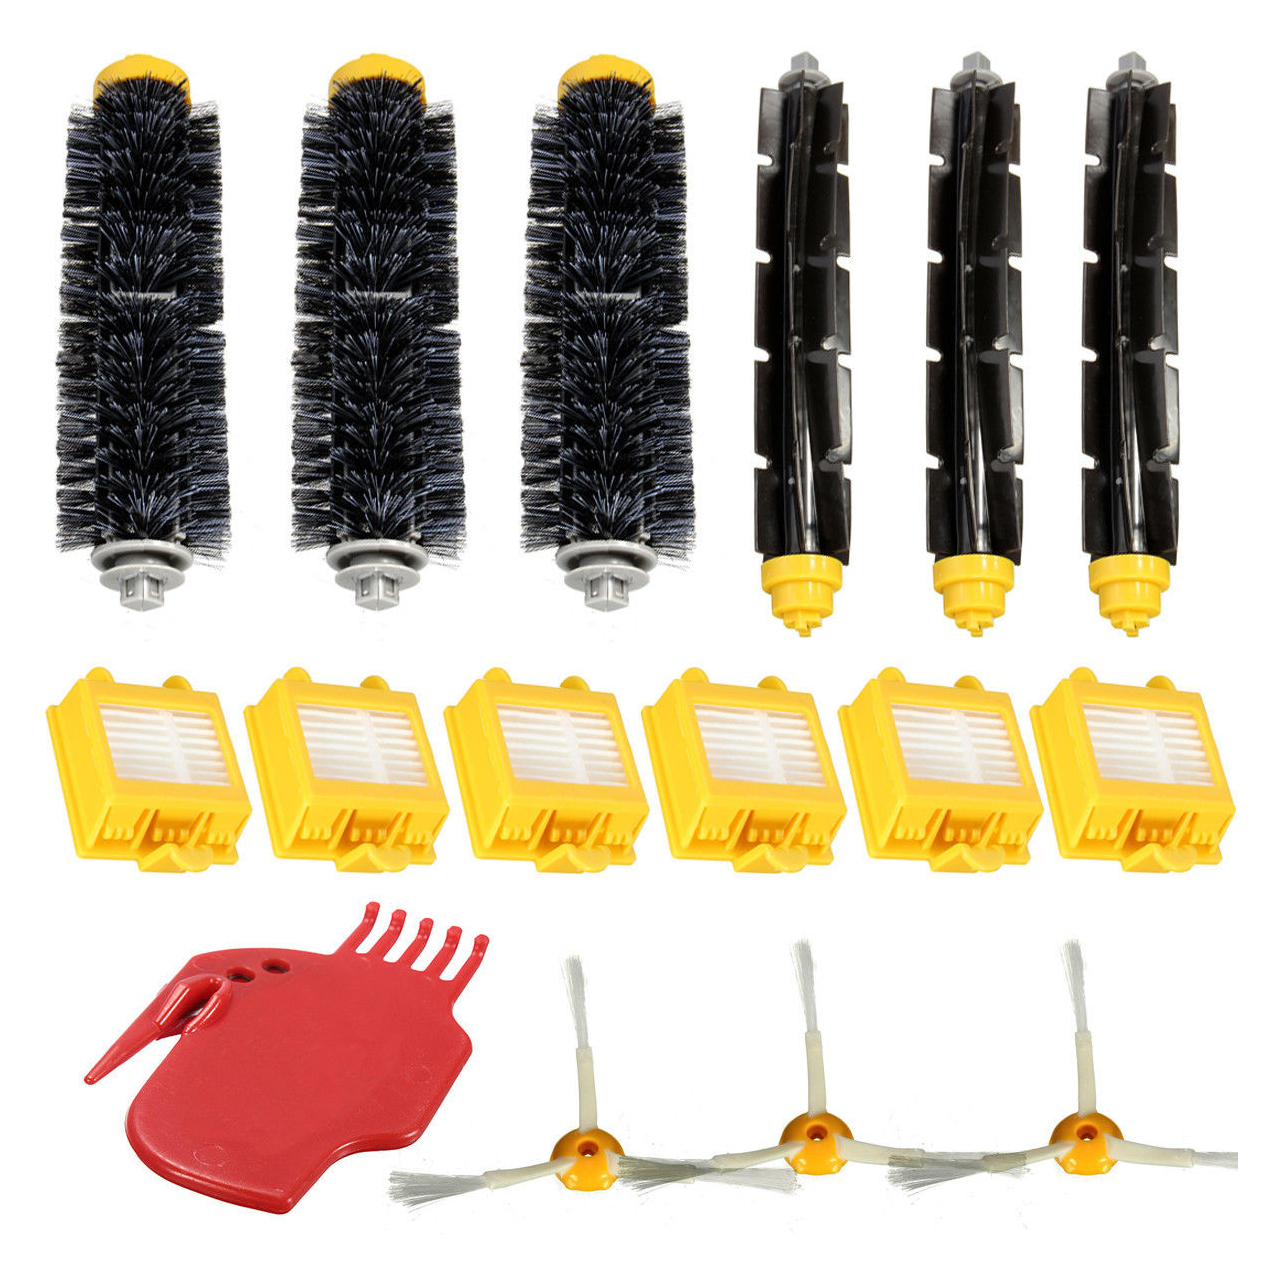 EAS-Filters Pack 3 Armed Side Brush Kit For iRobot Roomba Vacuum 700 760 770 780